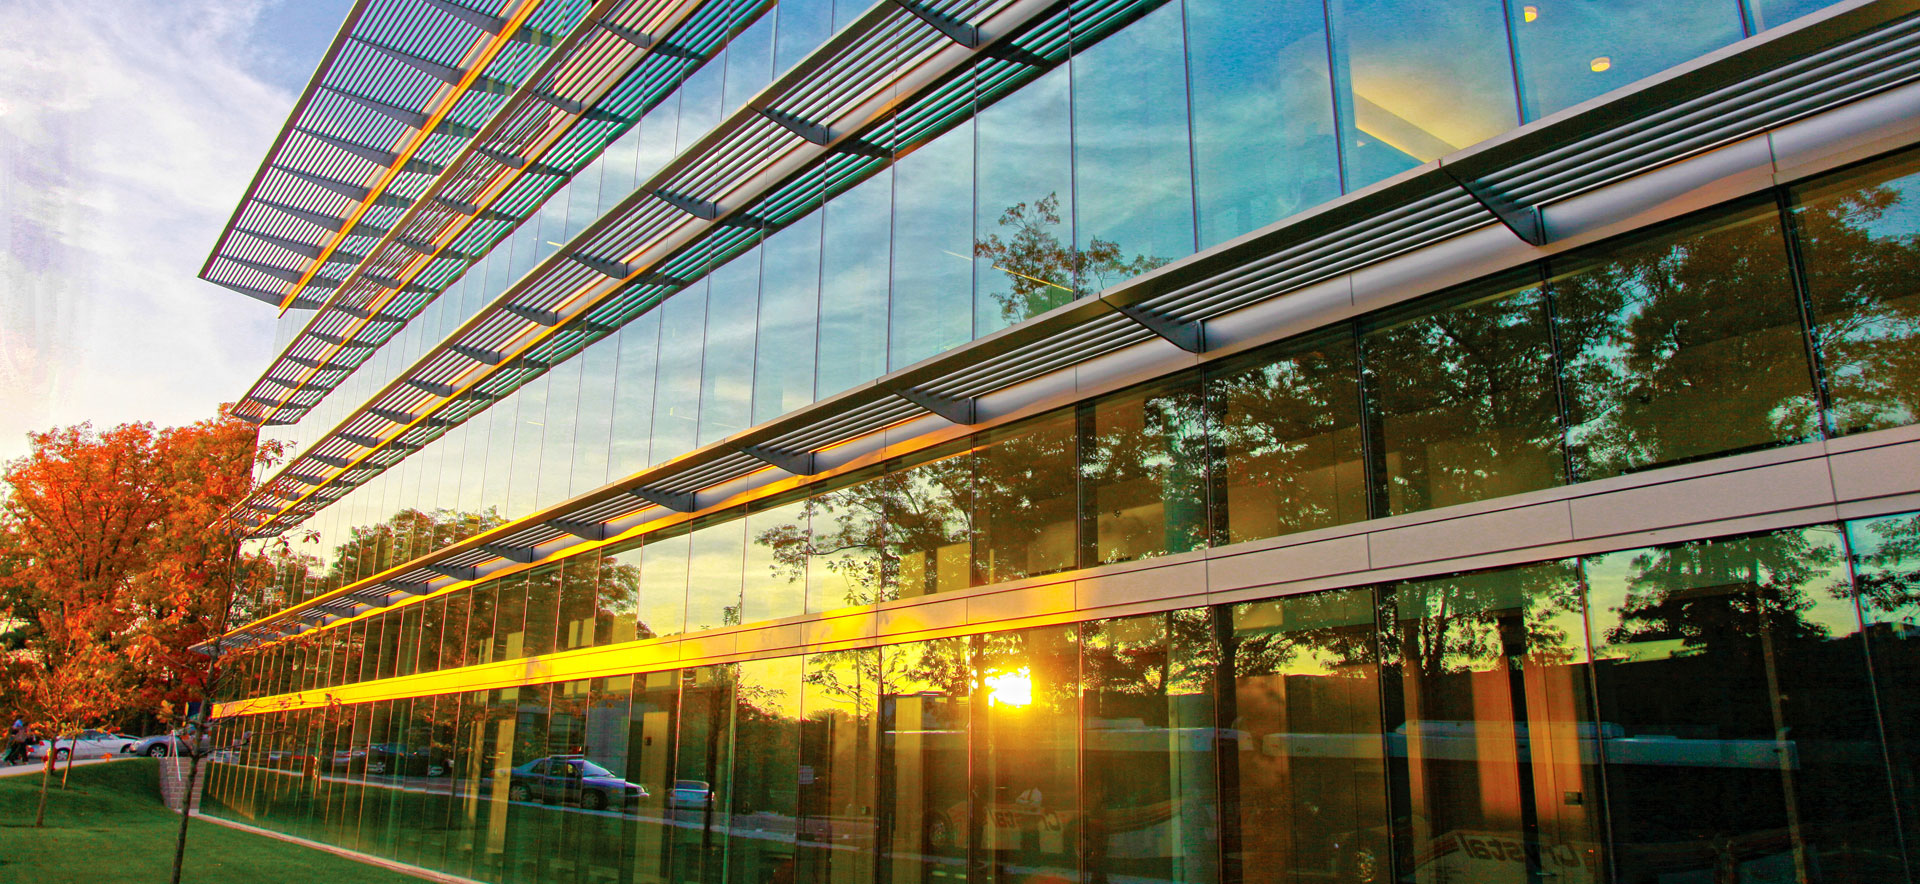 Sunset on the Mandel Center for the Humanities